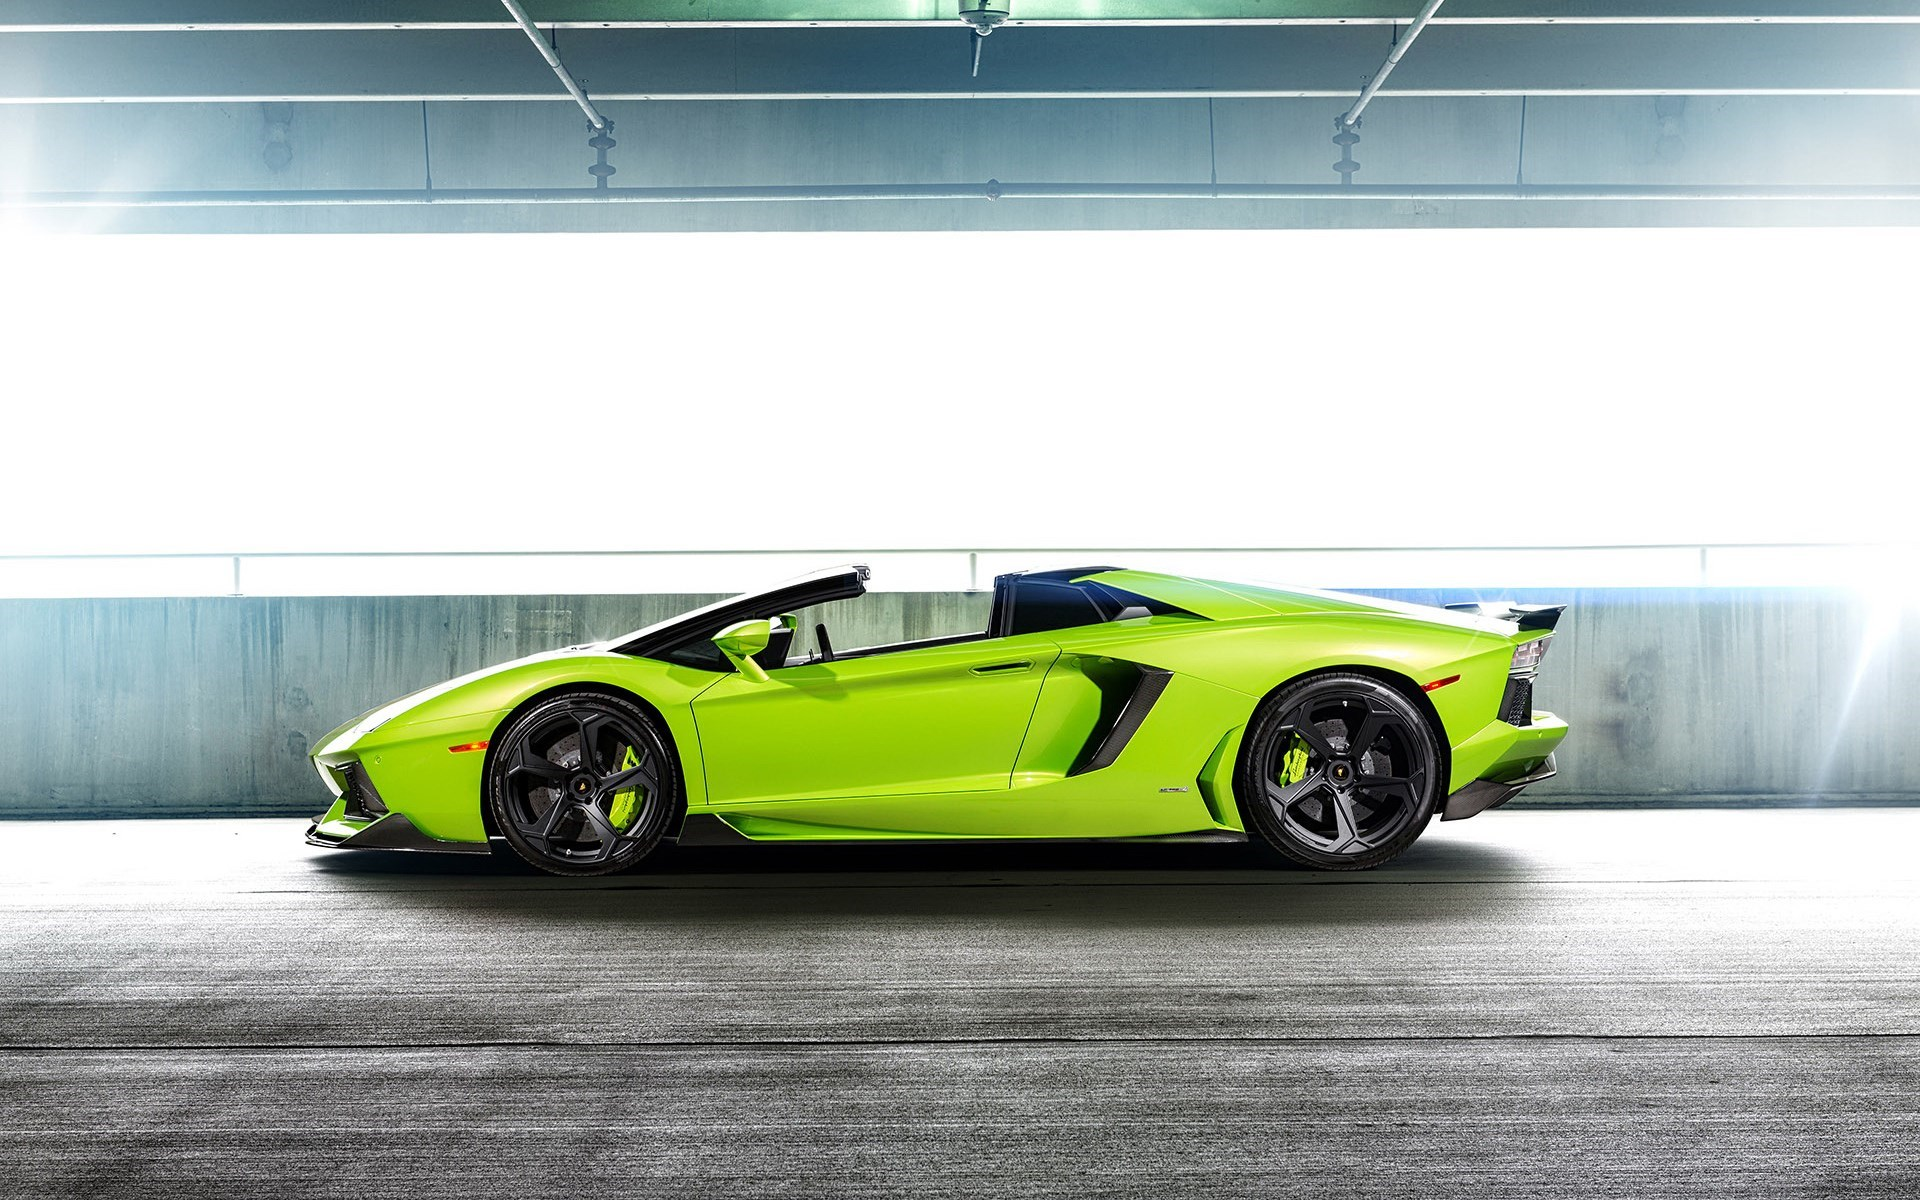 18 Green Lamborghini Aventador Wallpaperwallpapertad Photography 1172 Green Lamborghini Wallpaper